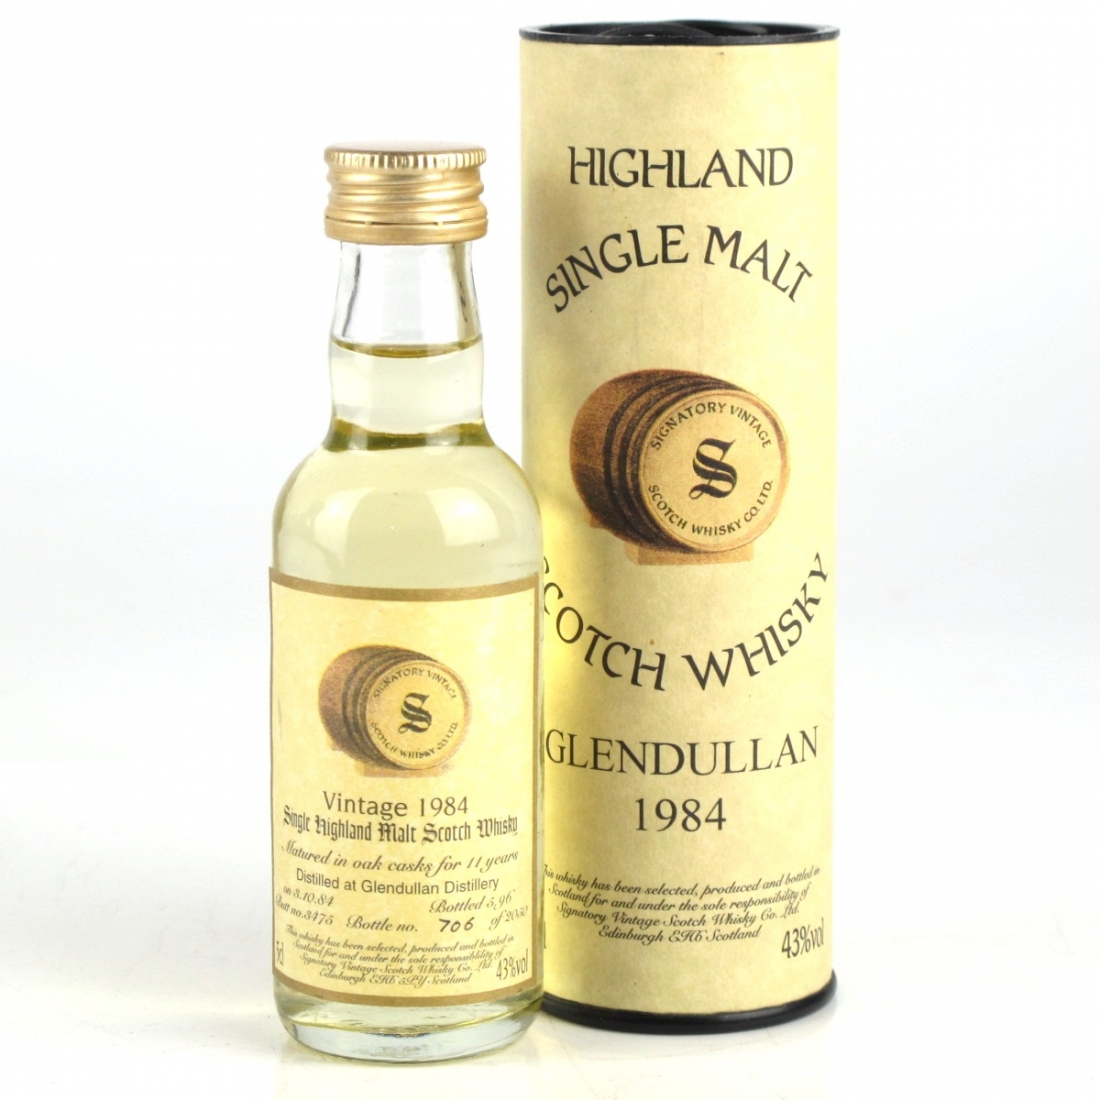 Glendullan 1984 Signatory Vintage 11 Year Old Minature 5cl